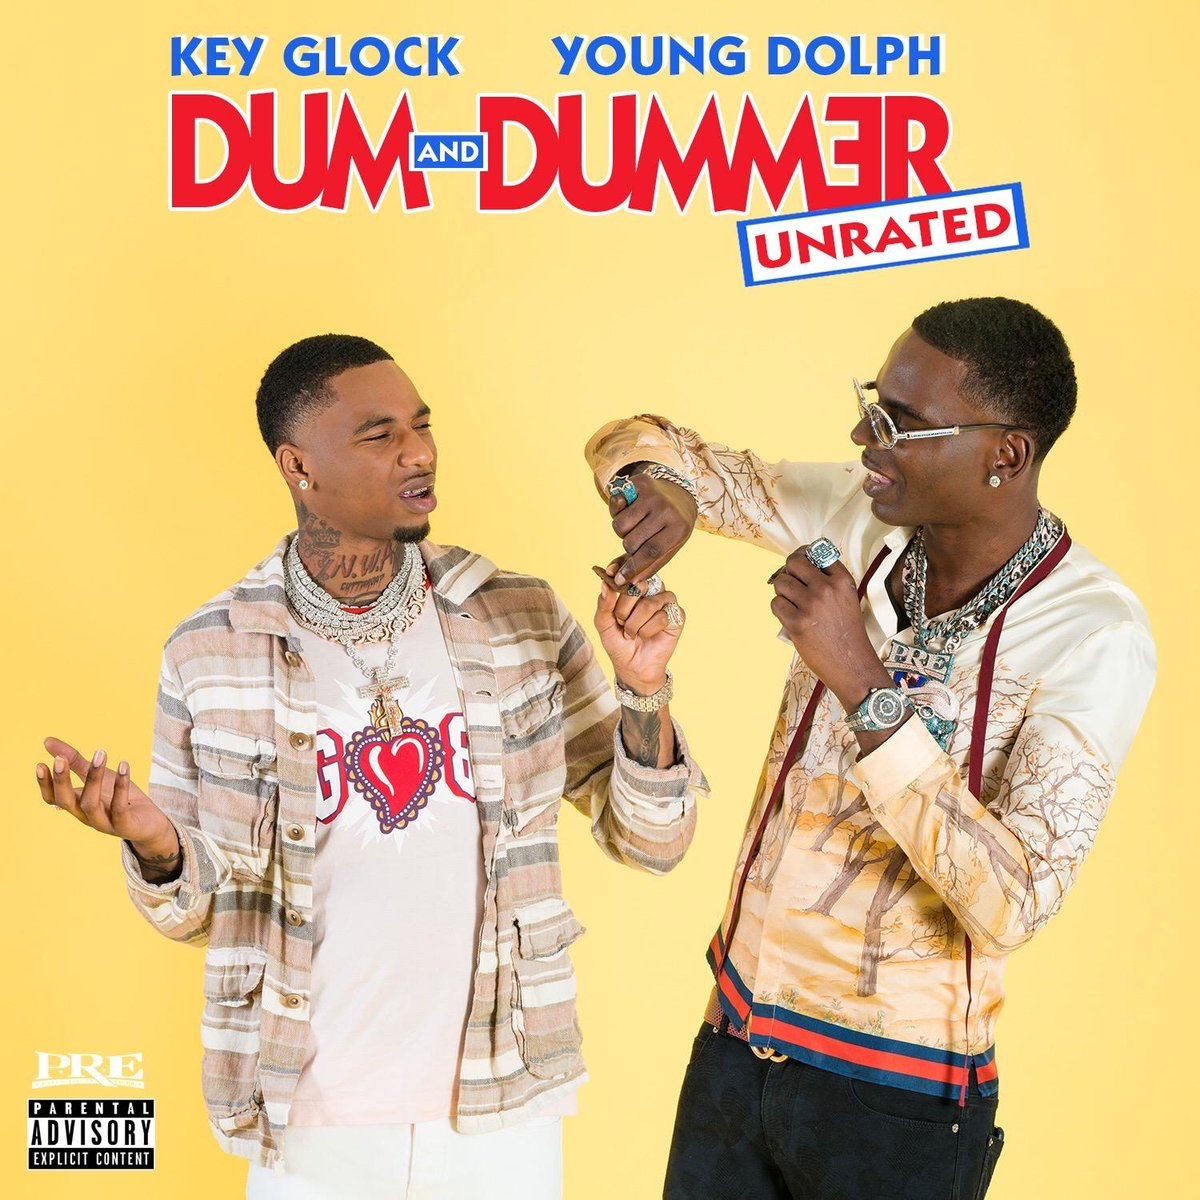 Young Dolph & Key Glock – Dum and Dummer [Album]